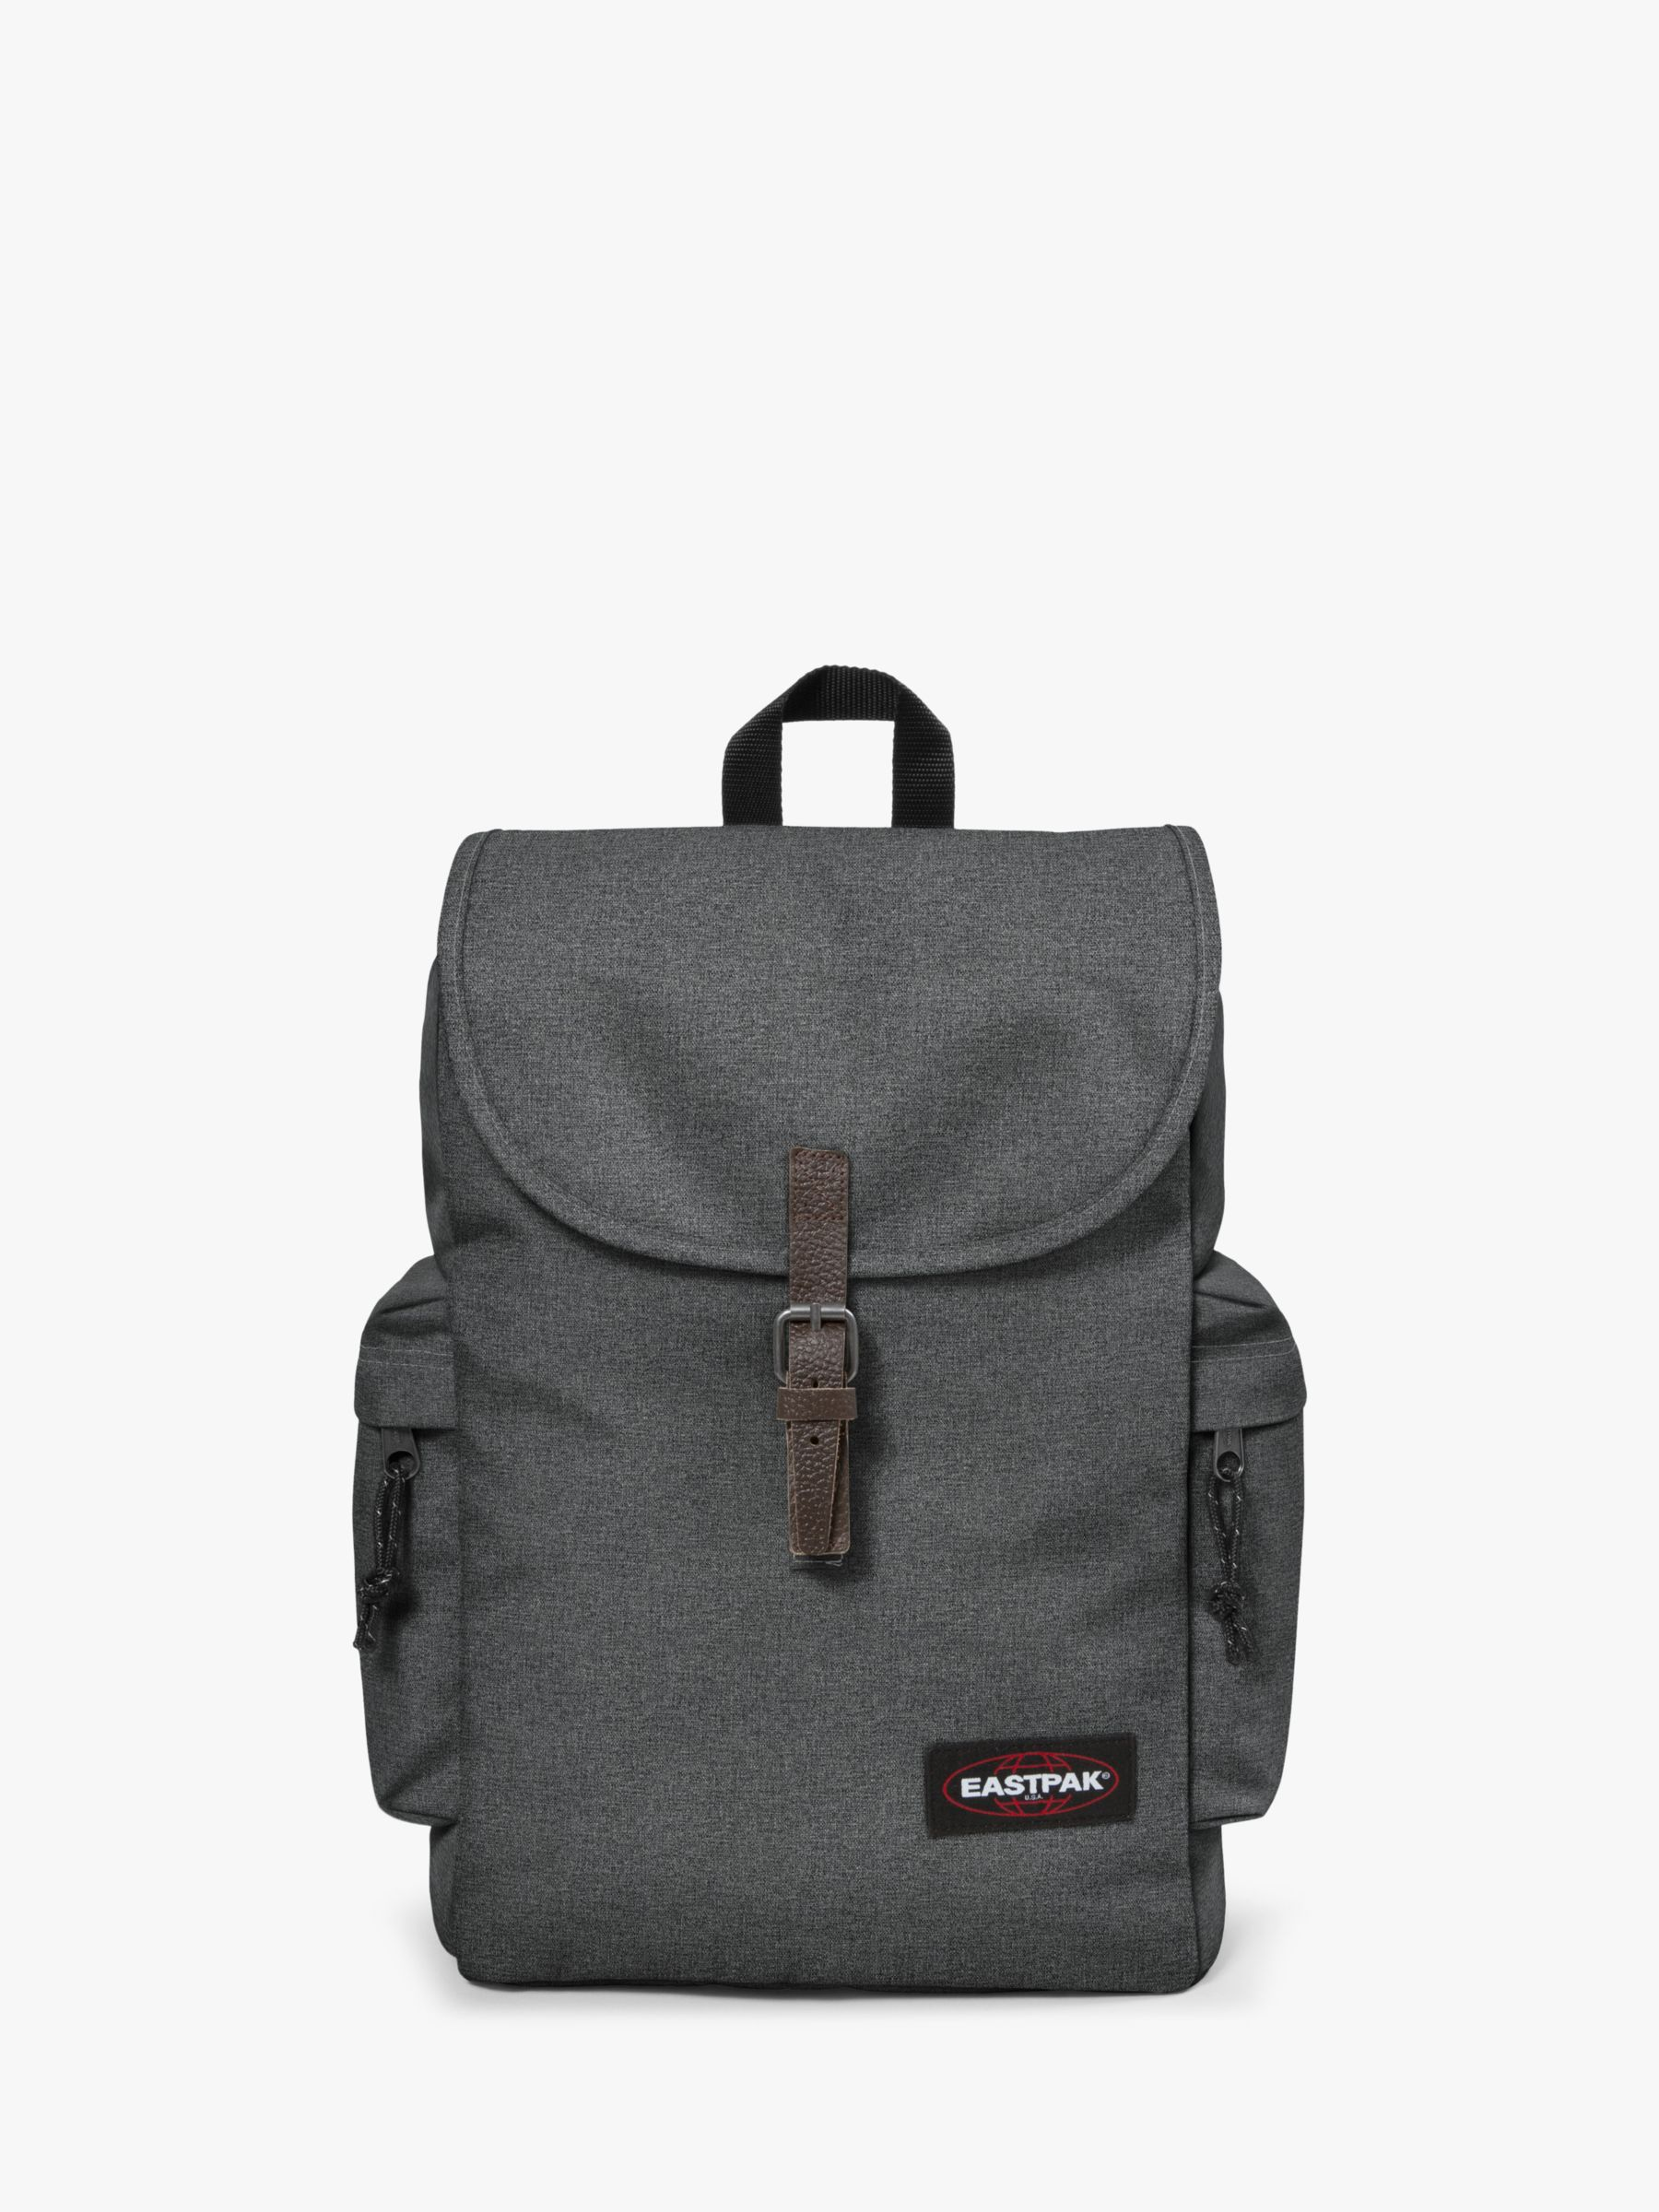 Eastpak Eastpak Austin Backpack